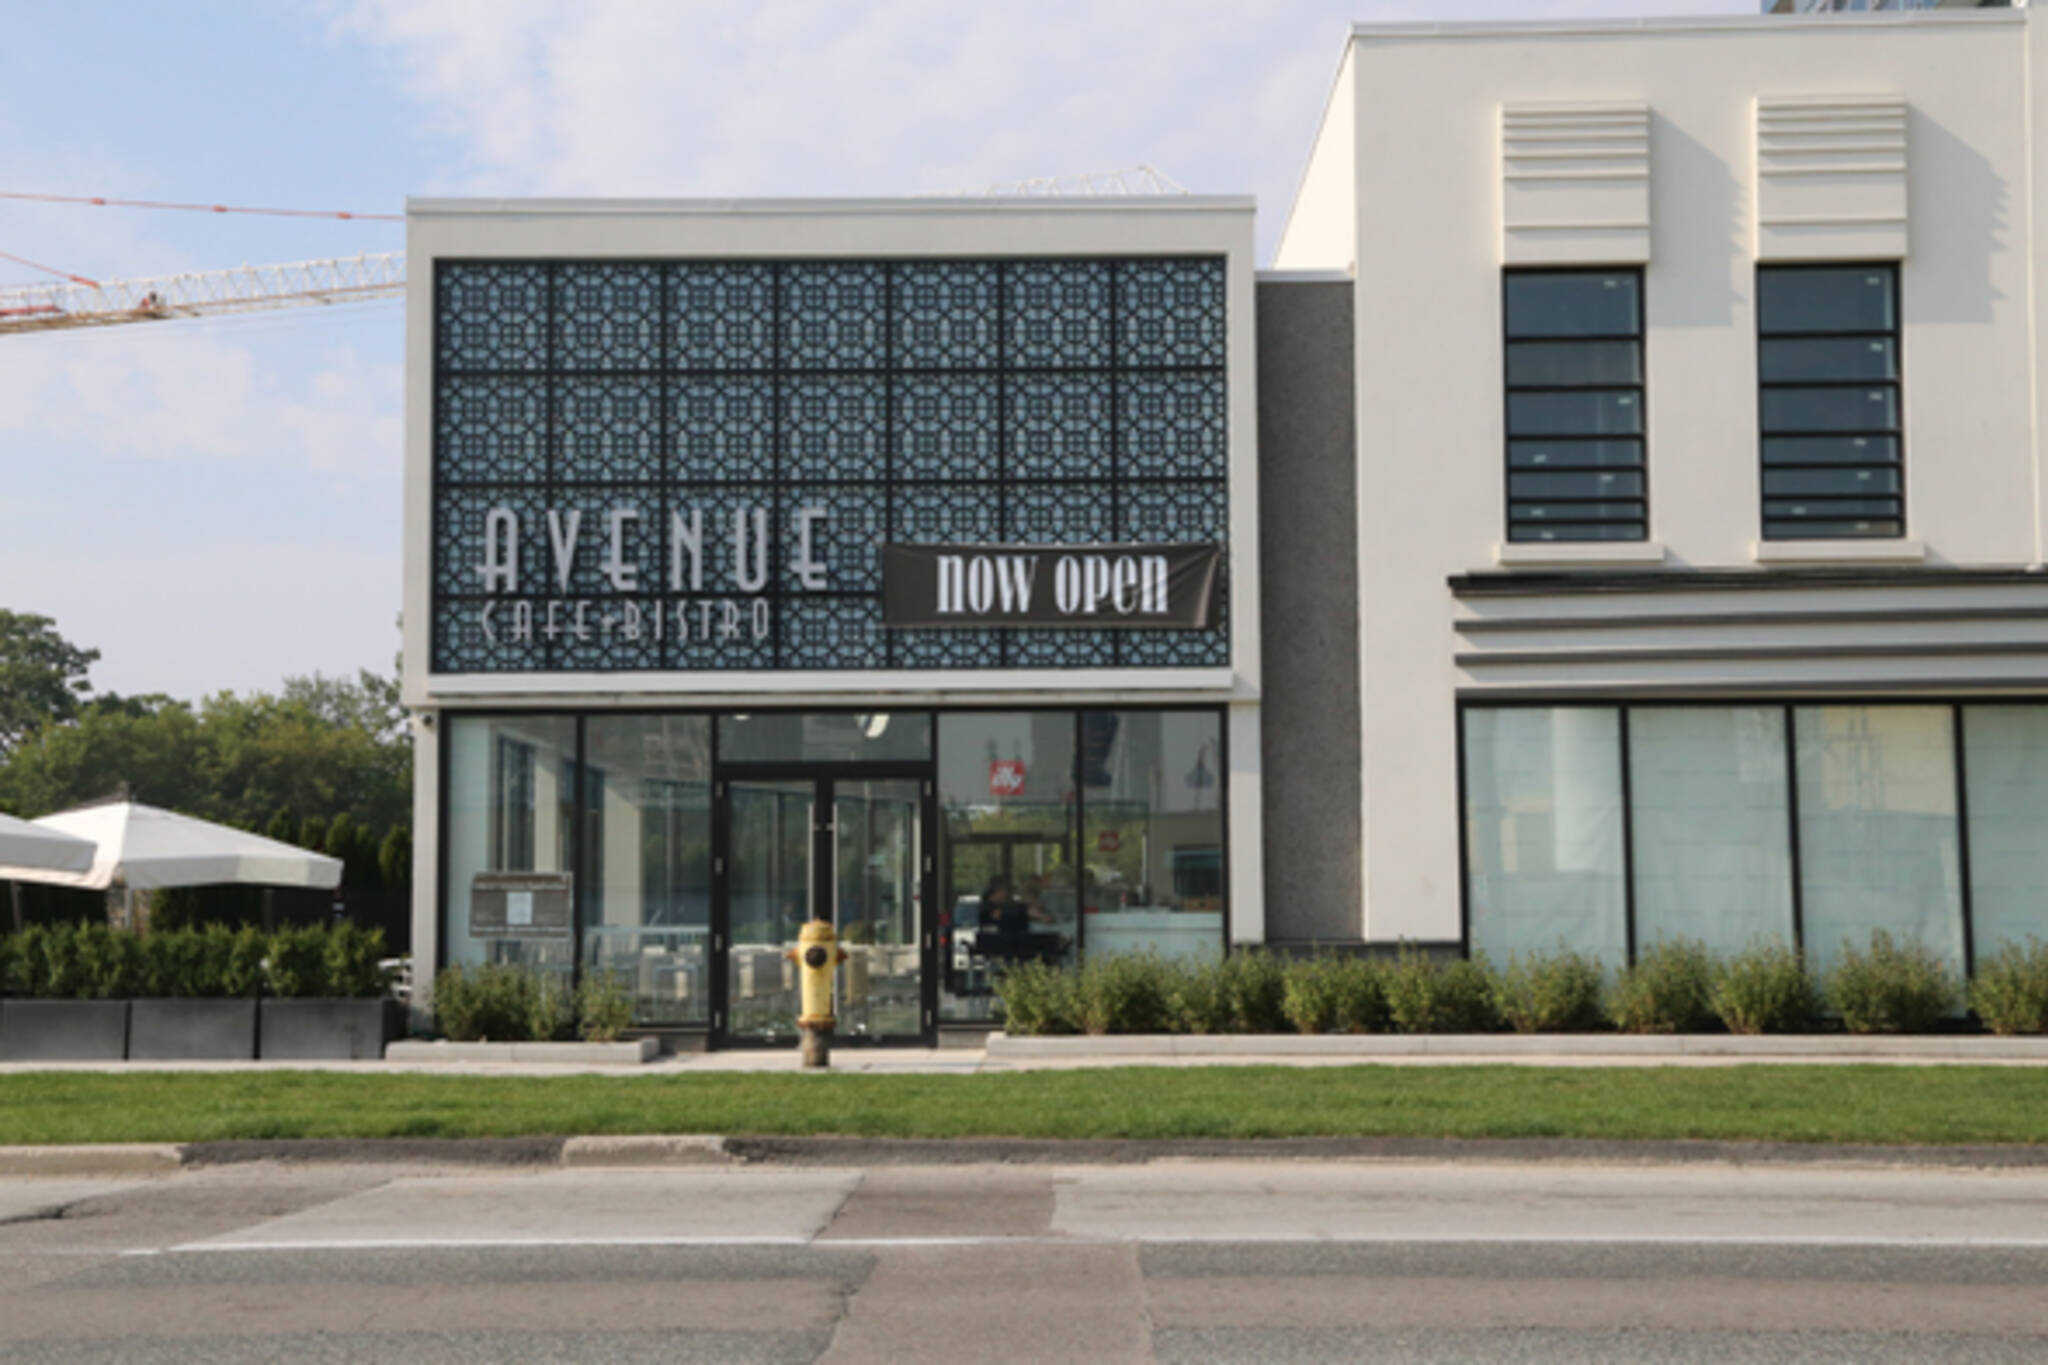 Avenue Cafe and Bistro